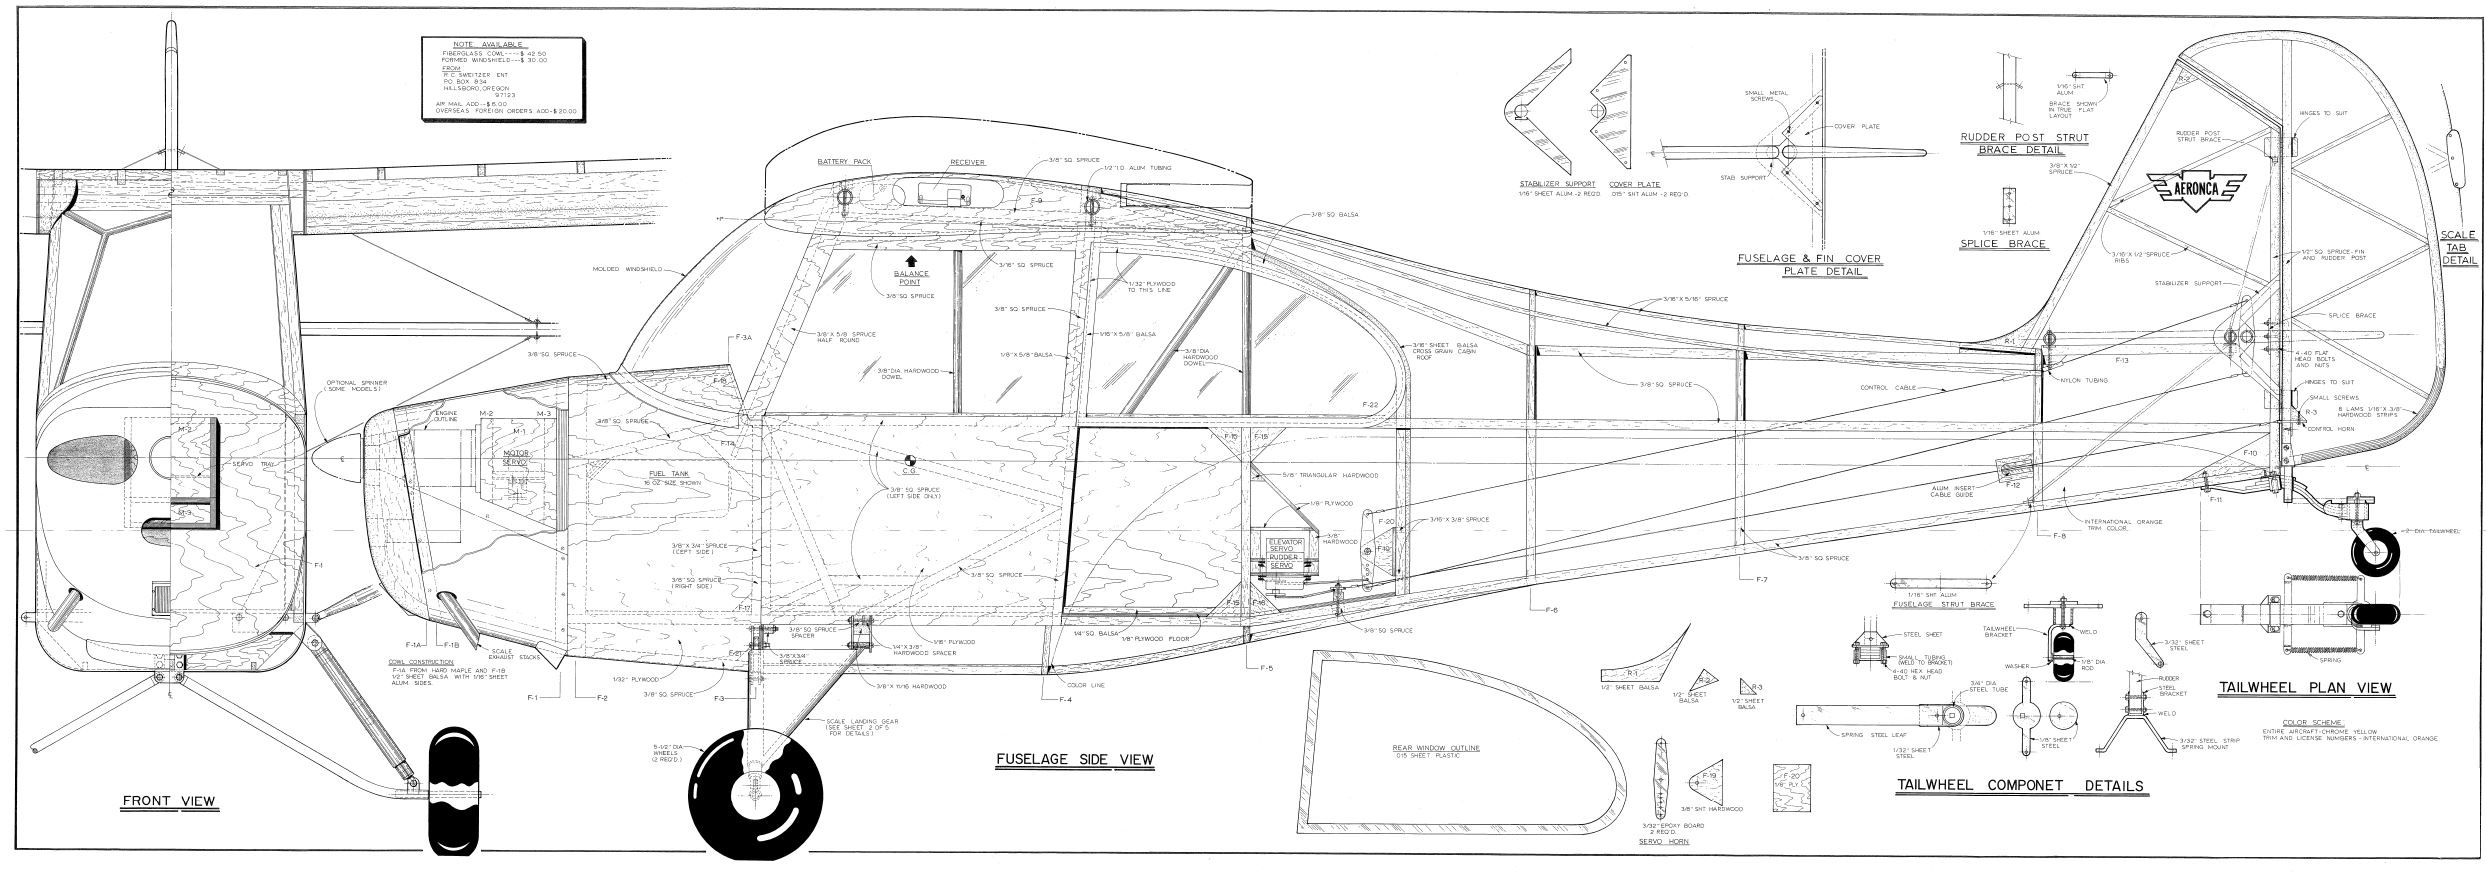 giant scale model airplane plans - Versand Container Huser Plne Pdf